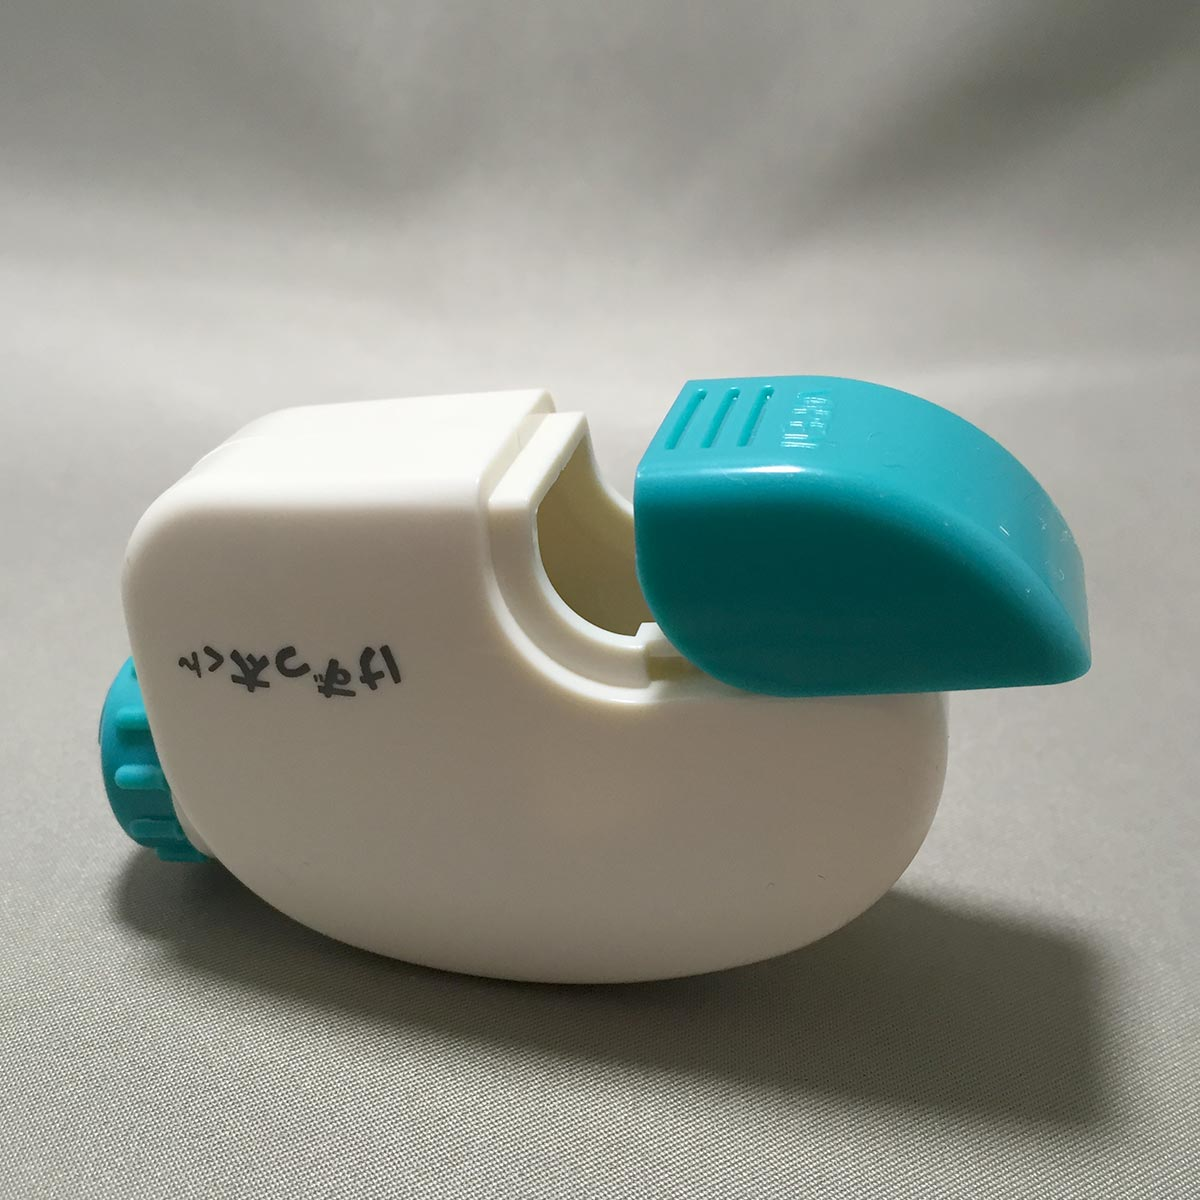 kezutta kun pencil sharpener - base opened